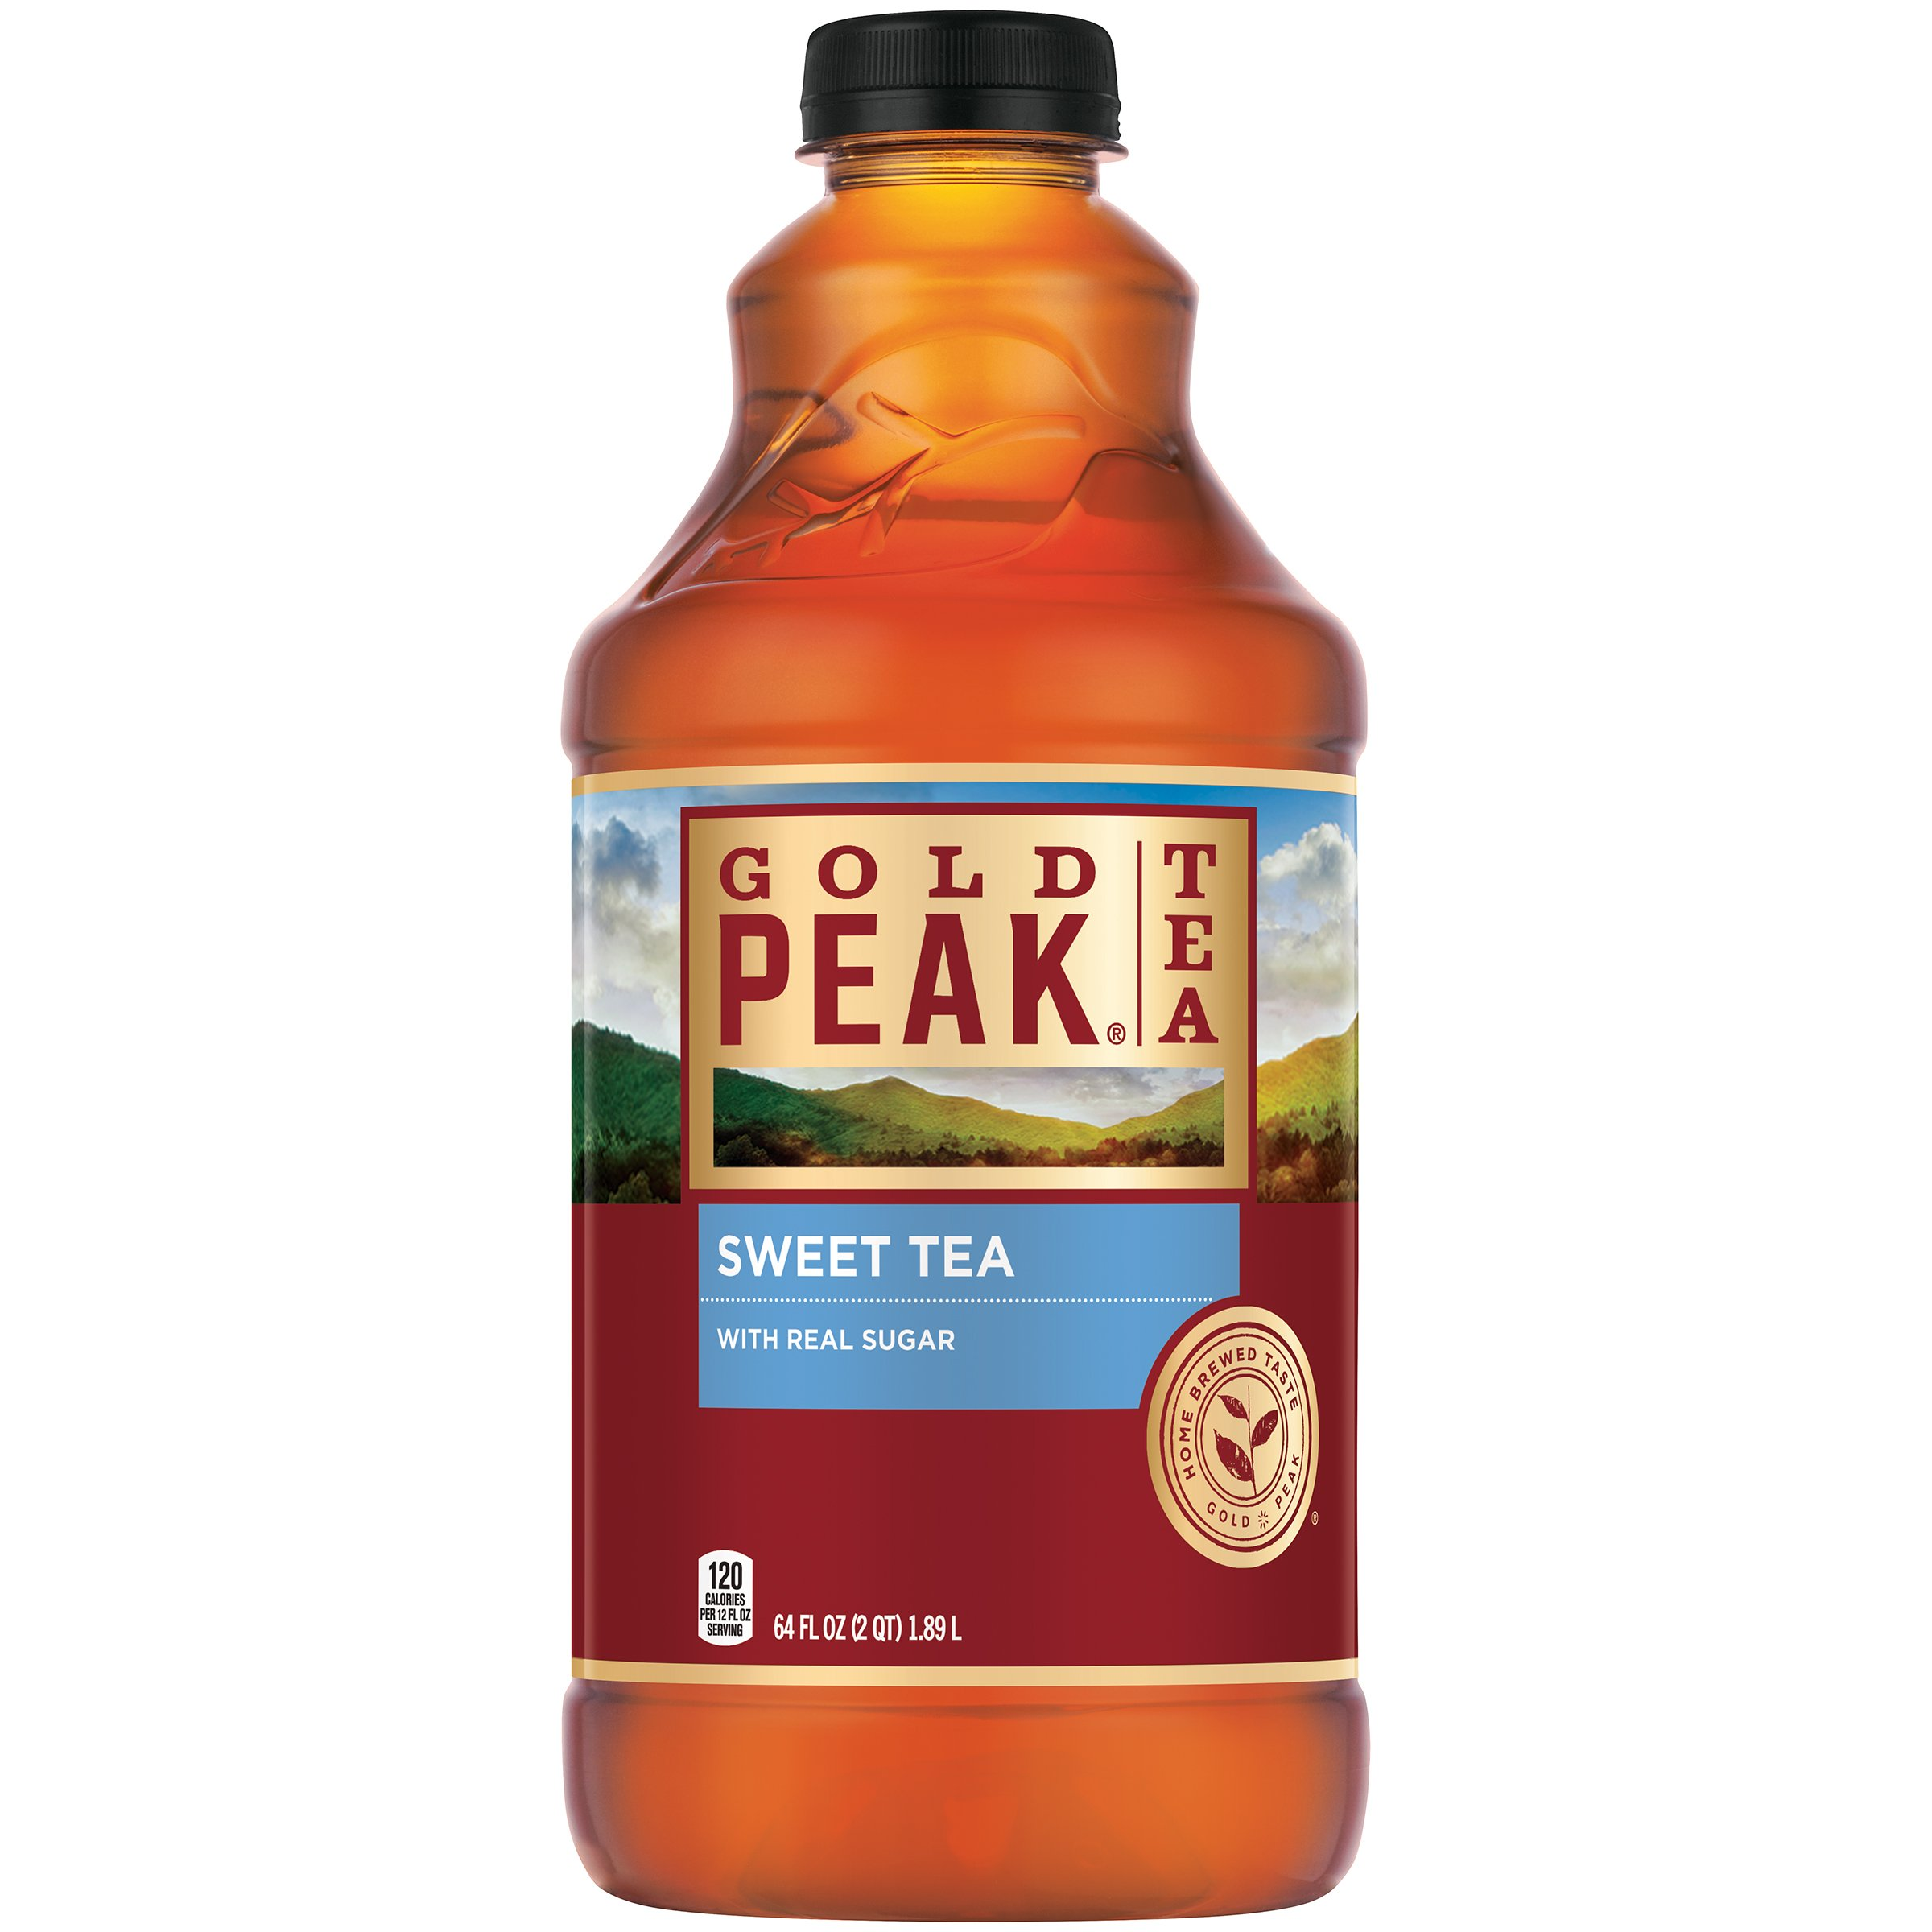 Gold Peak Sweetened Black Iced Tea Drink, 64 fl oz